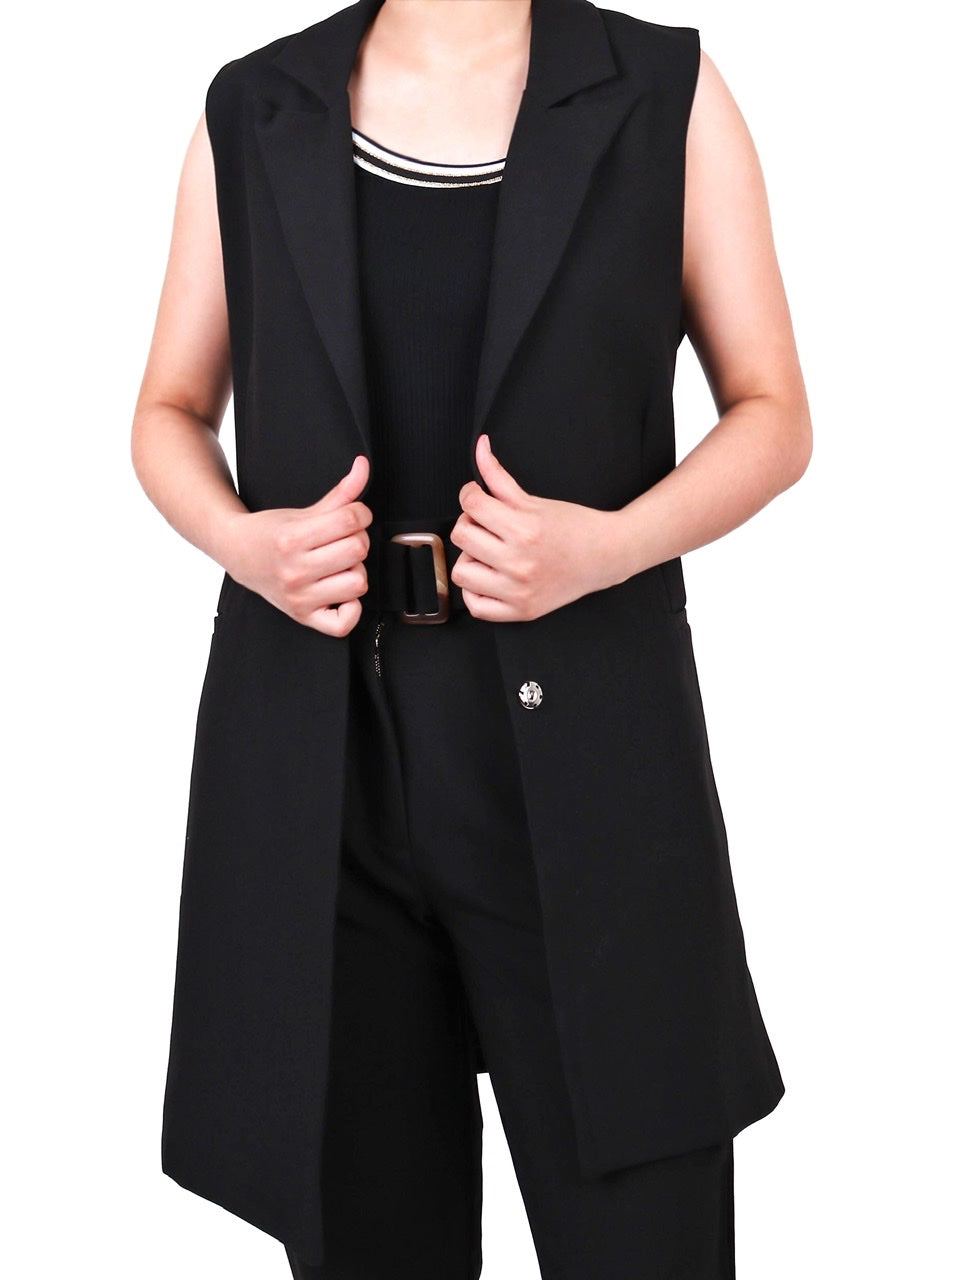 FULLY-LINED LONG VEST WITH RESIN BUCKLE